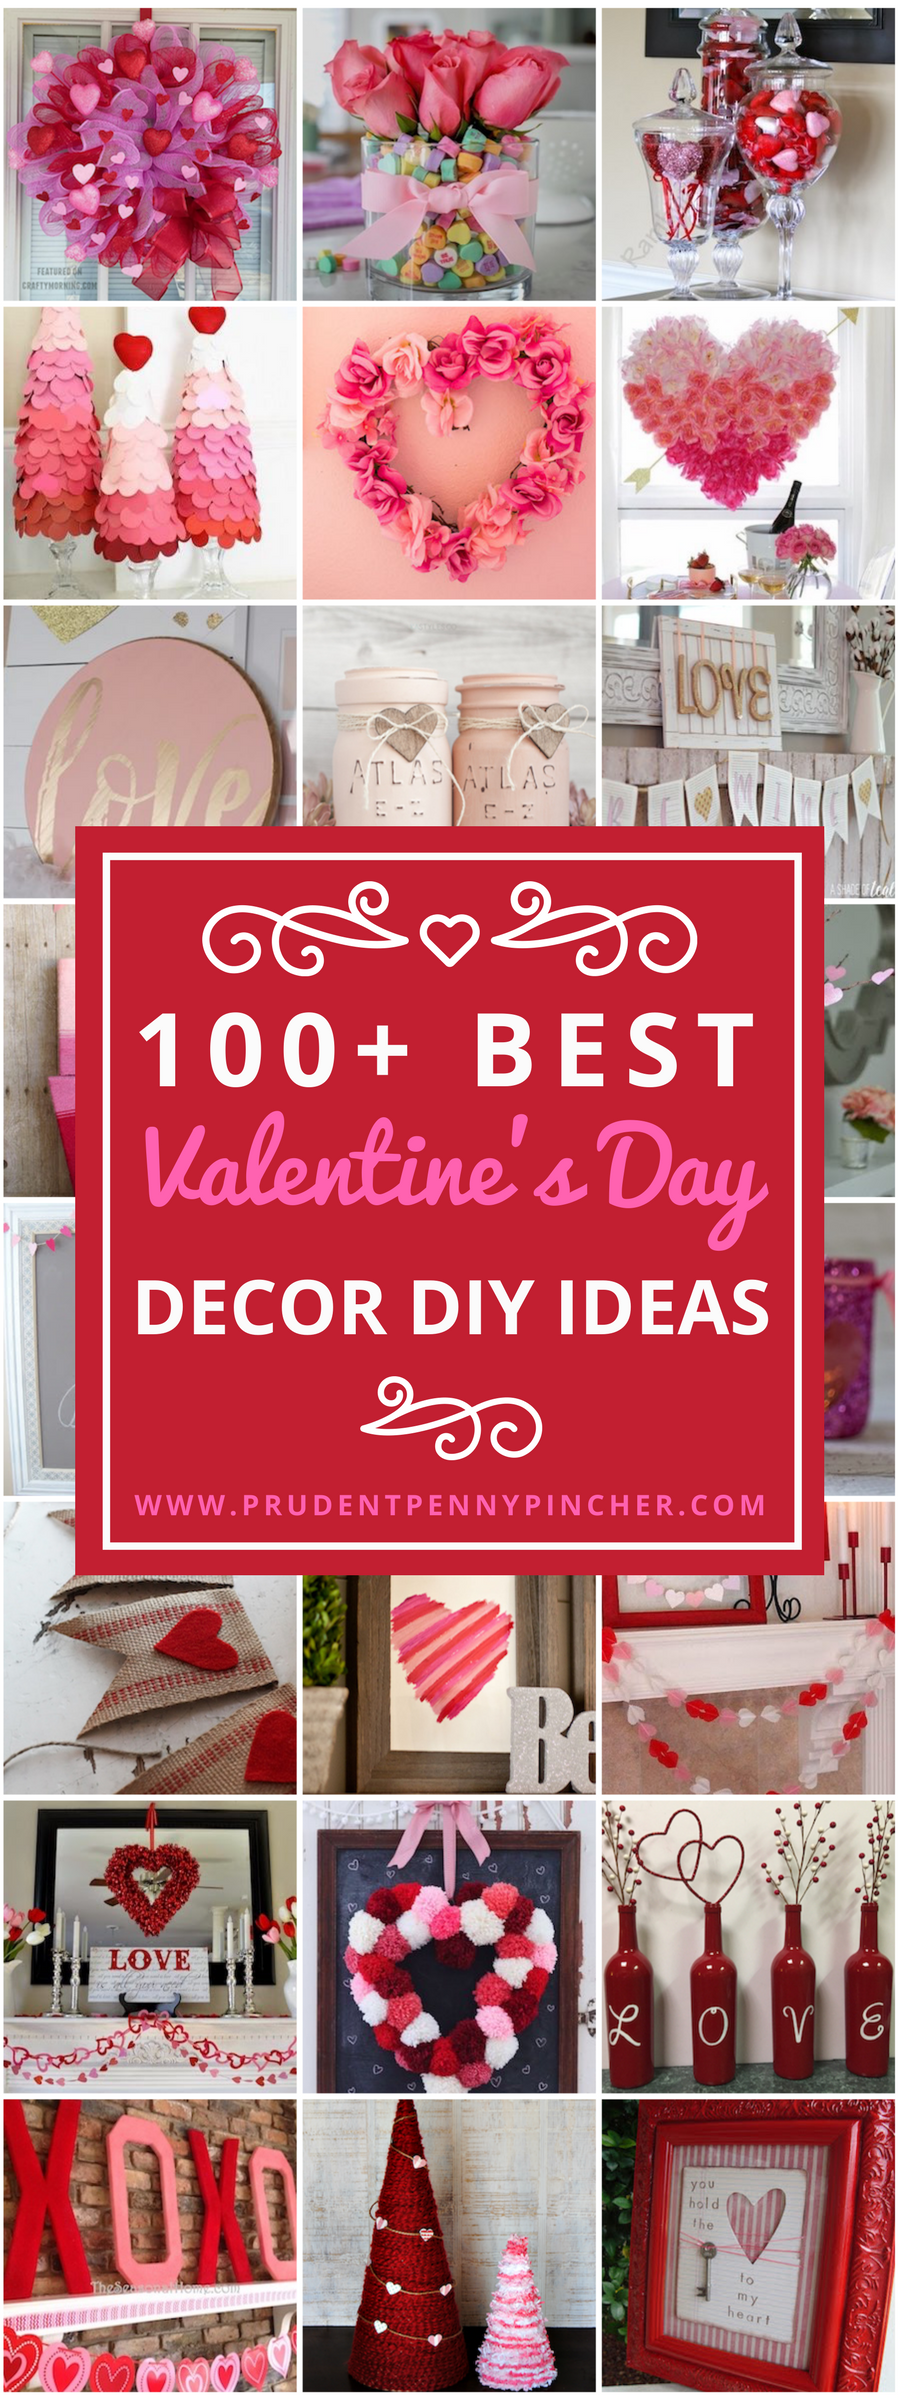 valentines day decor, bridal shower, baby shower, party decorations